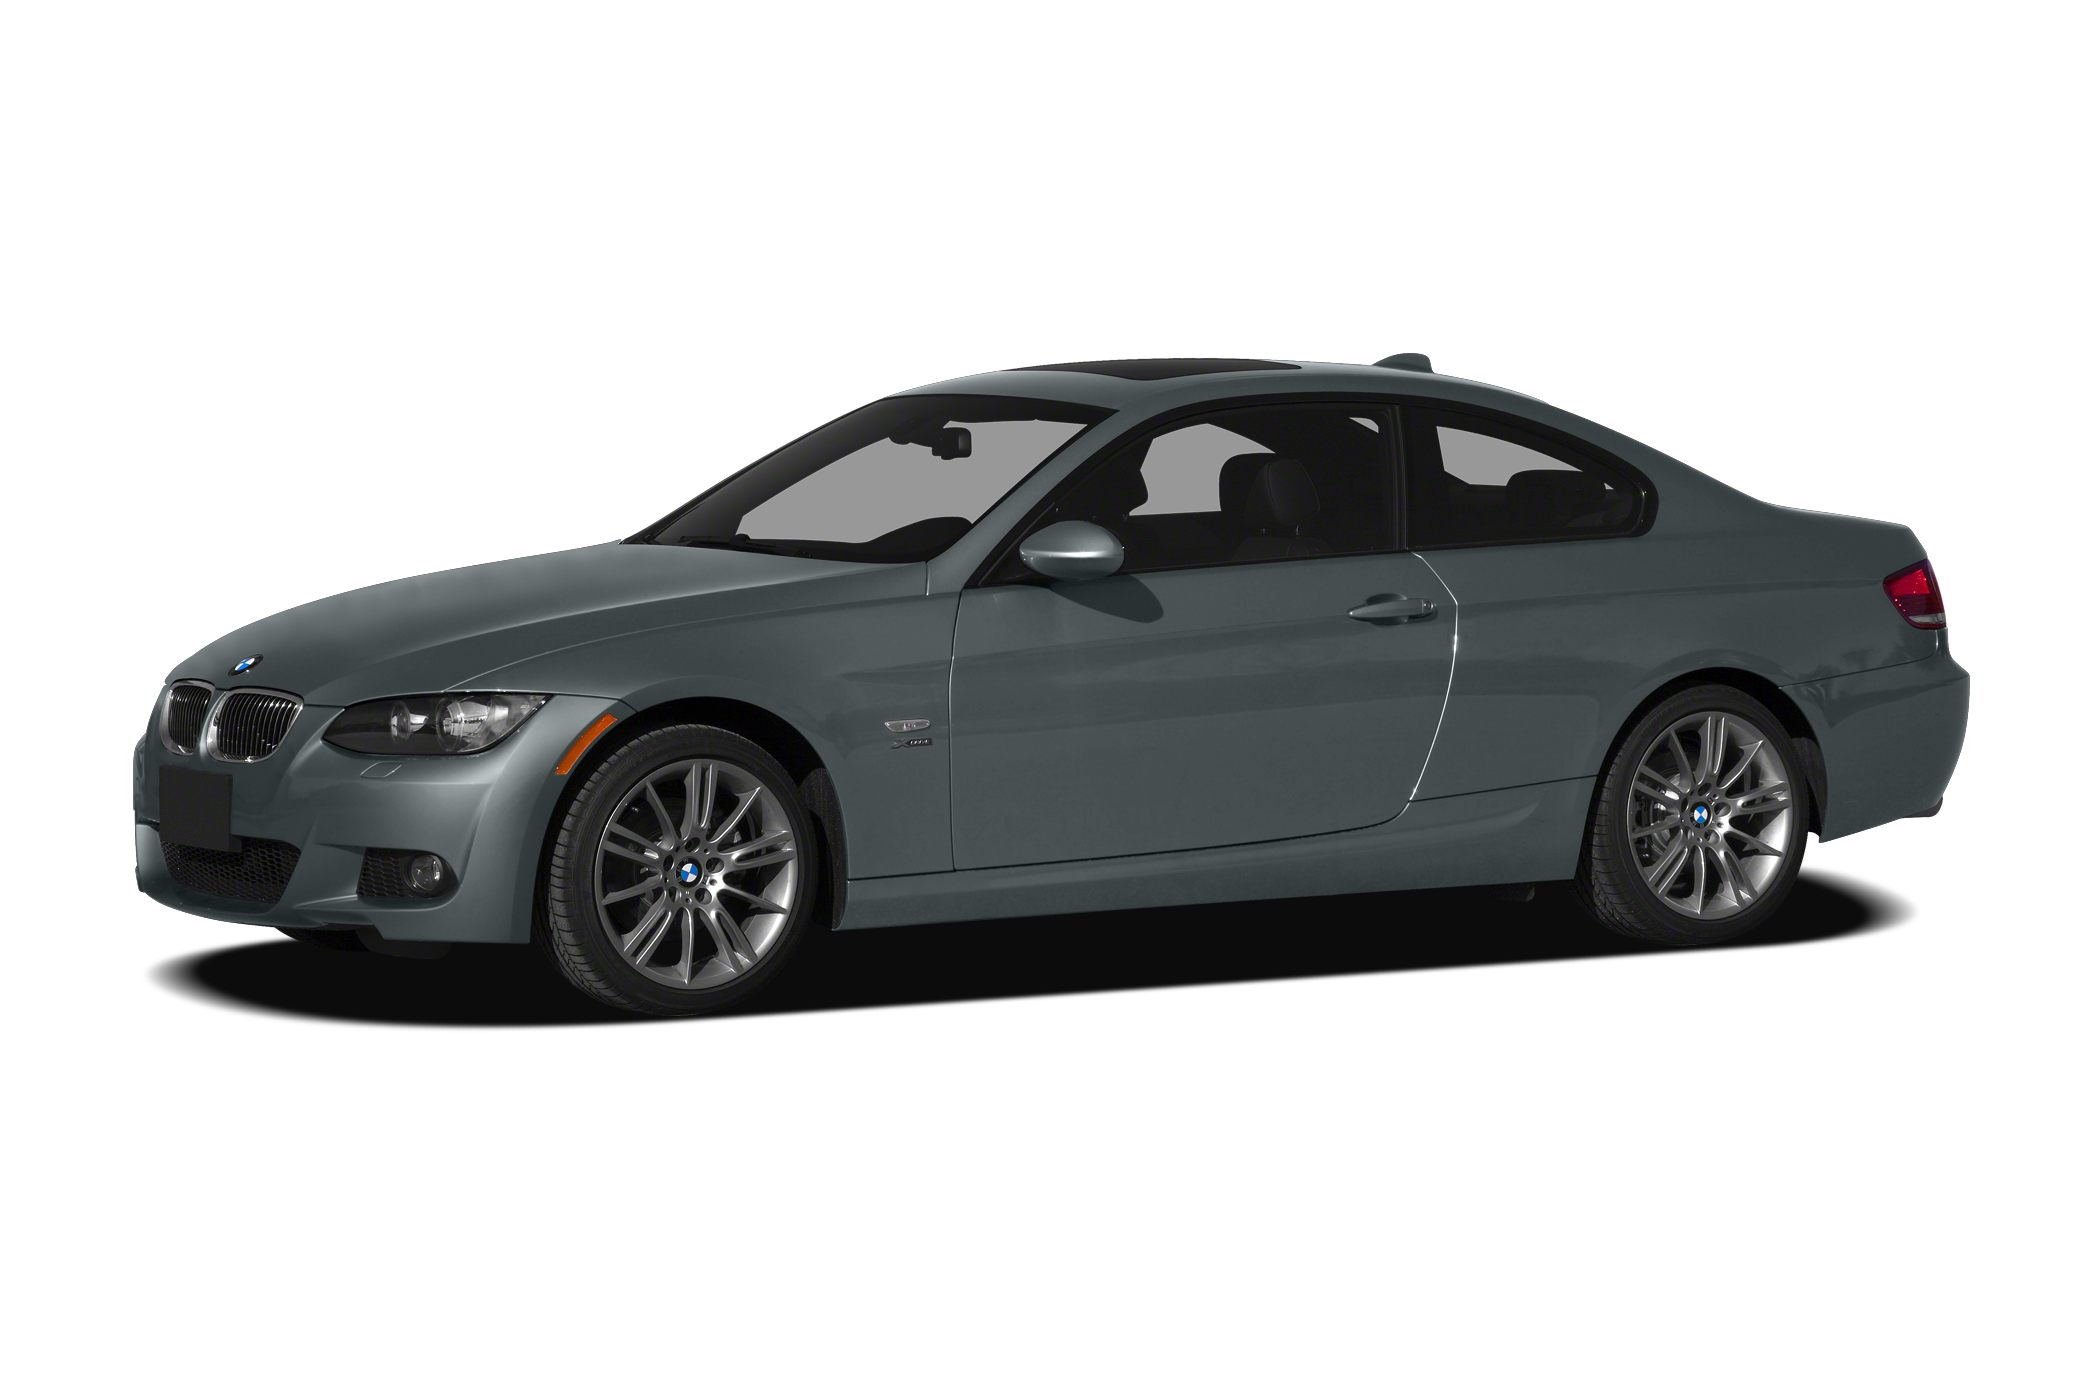 2010 BMW 328 I XDrive Sedan for sale in Mechanicsburg for $22,750 with 34,030 miles